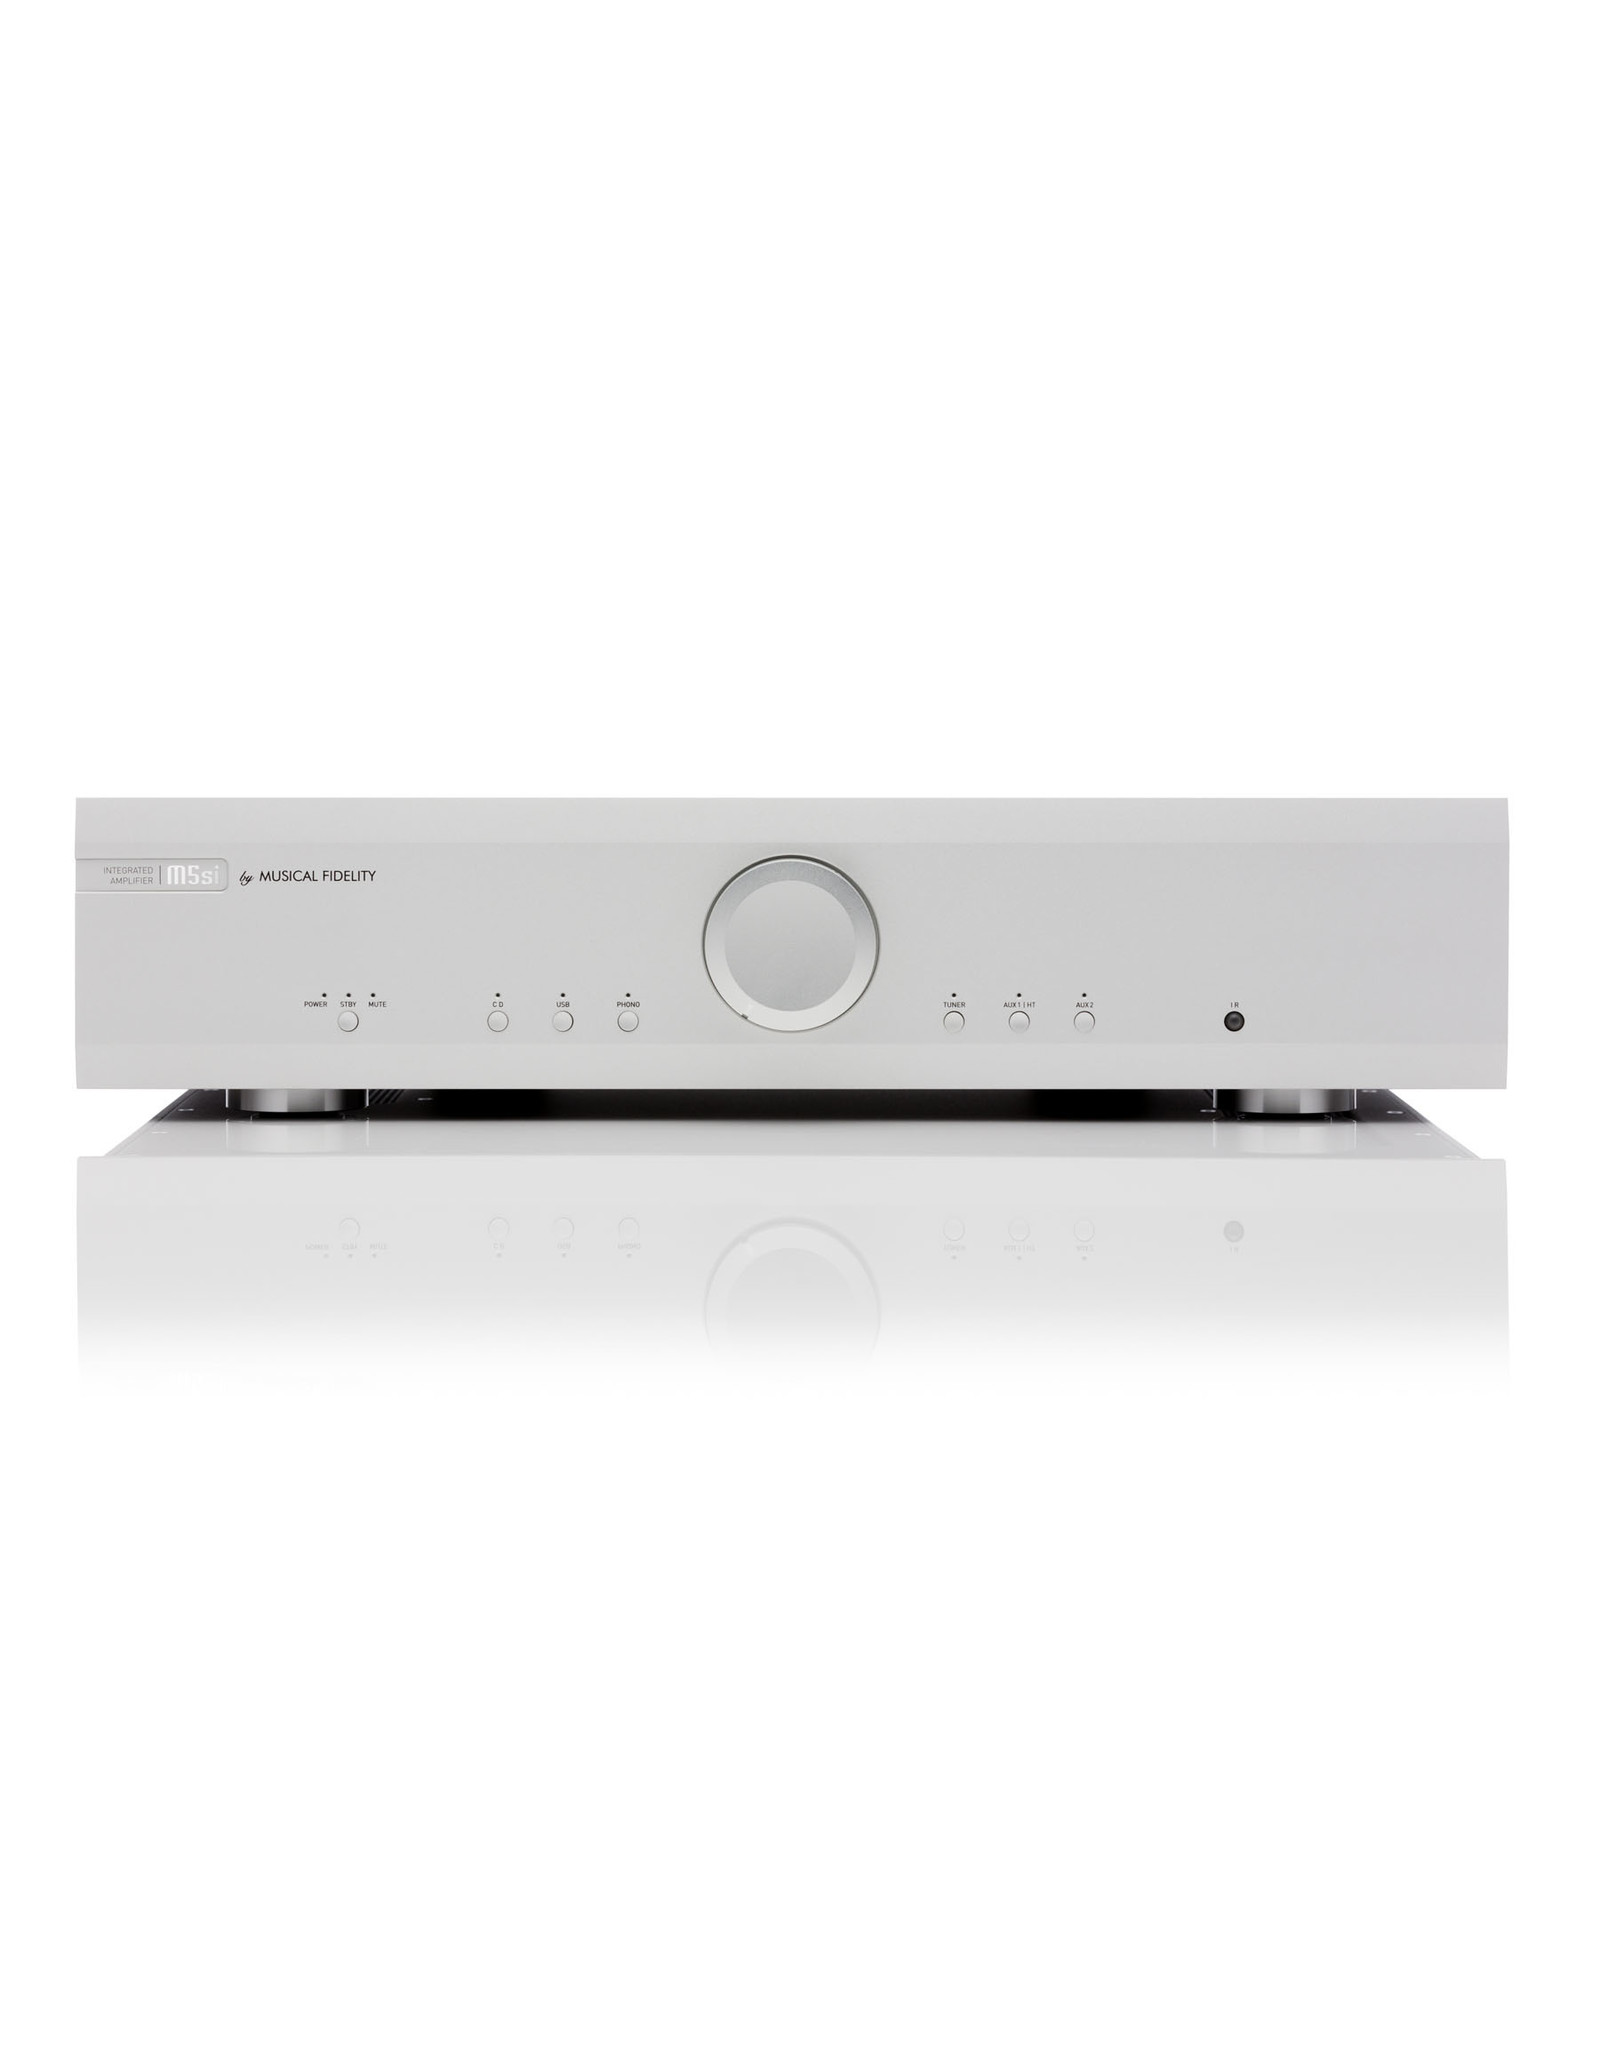 Musical Fidelity Musical Fidelity M5si Integrated Amplifier